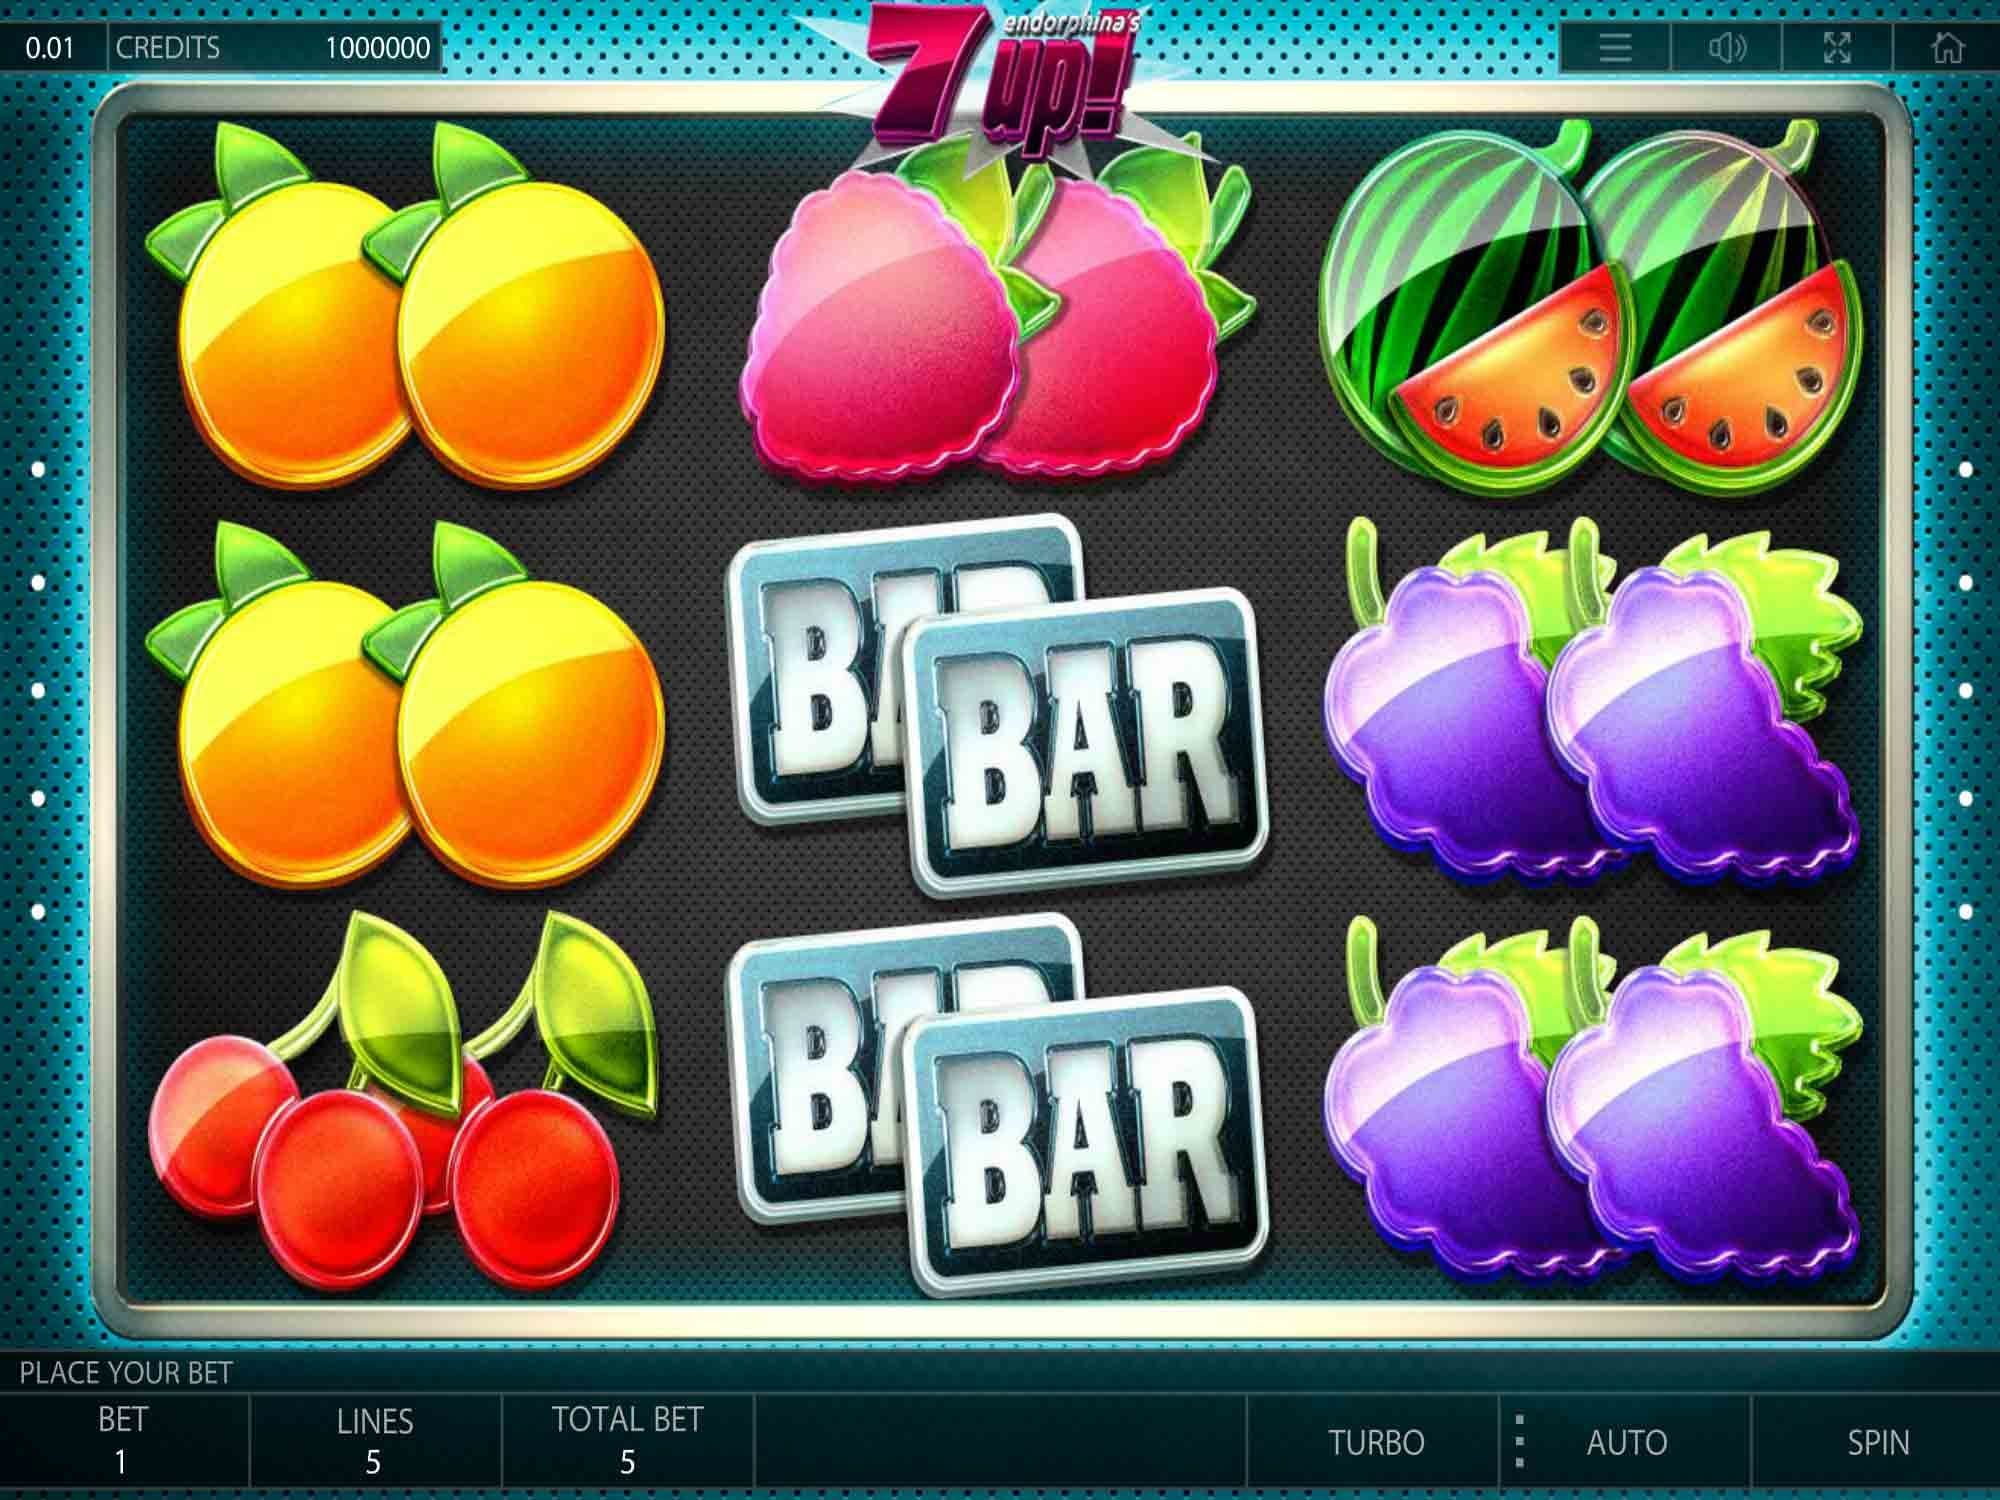 7-up slot machine gameplay